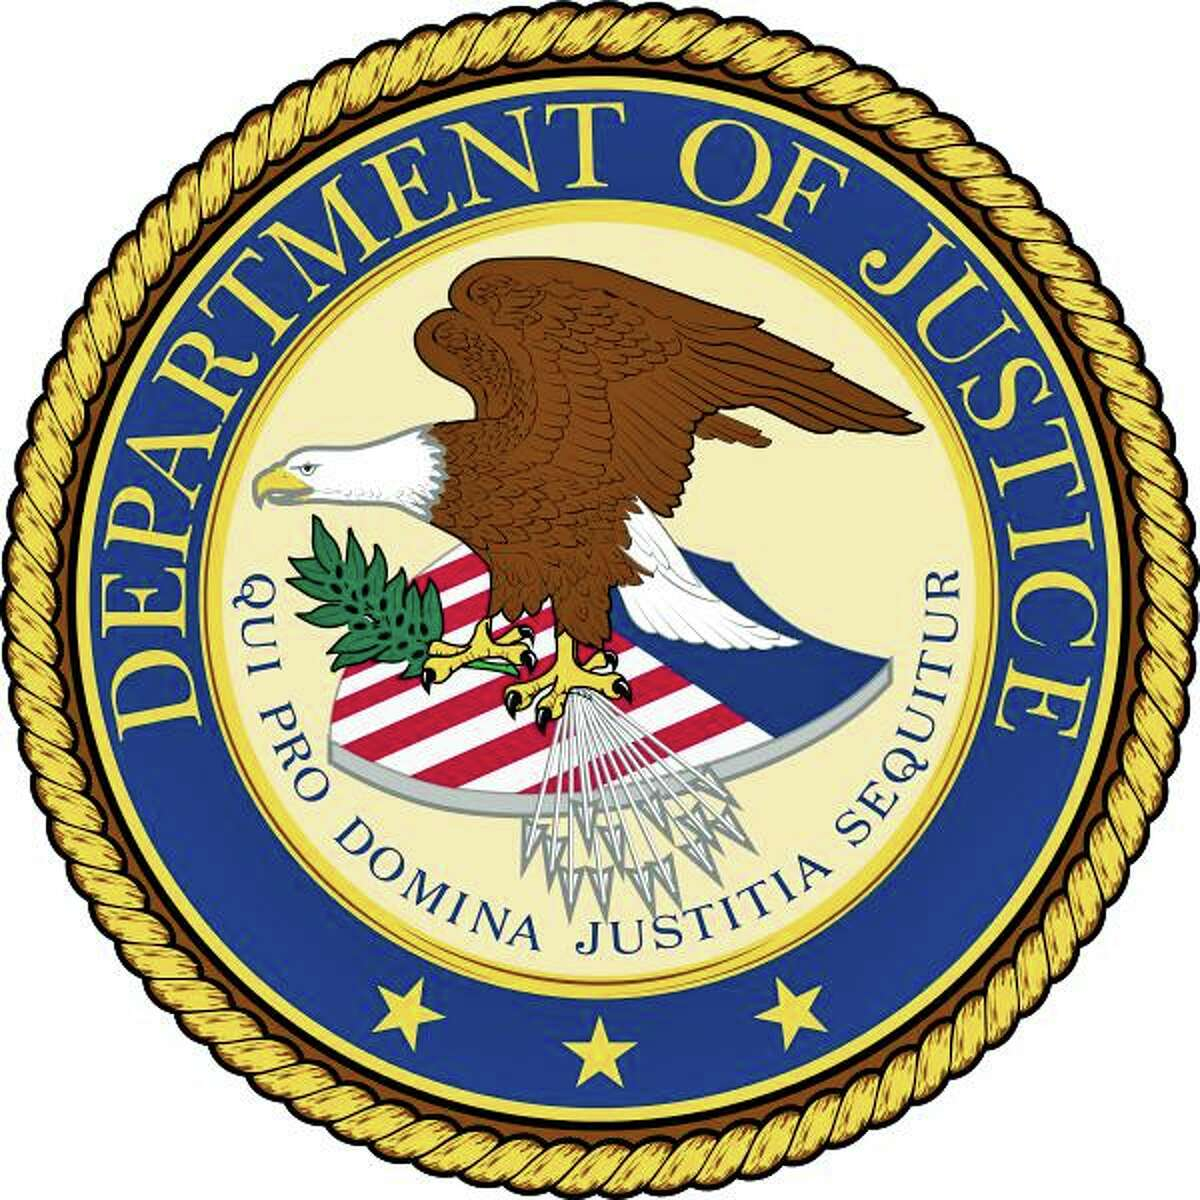 """A 54-year-old Providence, R.I. man has been indicted in connection with theft of tires and rims from numerous luxury vehicles in Connecticut and three other states, federal prosecutors said. Michael Farias was indicted by a federal grand jury in New Haven """"with offenses related to his alleged role in a scheme to steal tires and rims from new vehicles at car dealerships in northeastern states and then sell the stolen items to individuals across the""""country,"""" prosecutors announced Tuesday."""